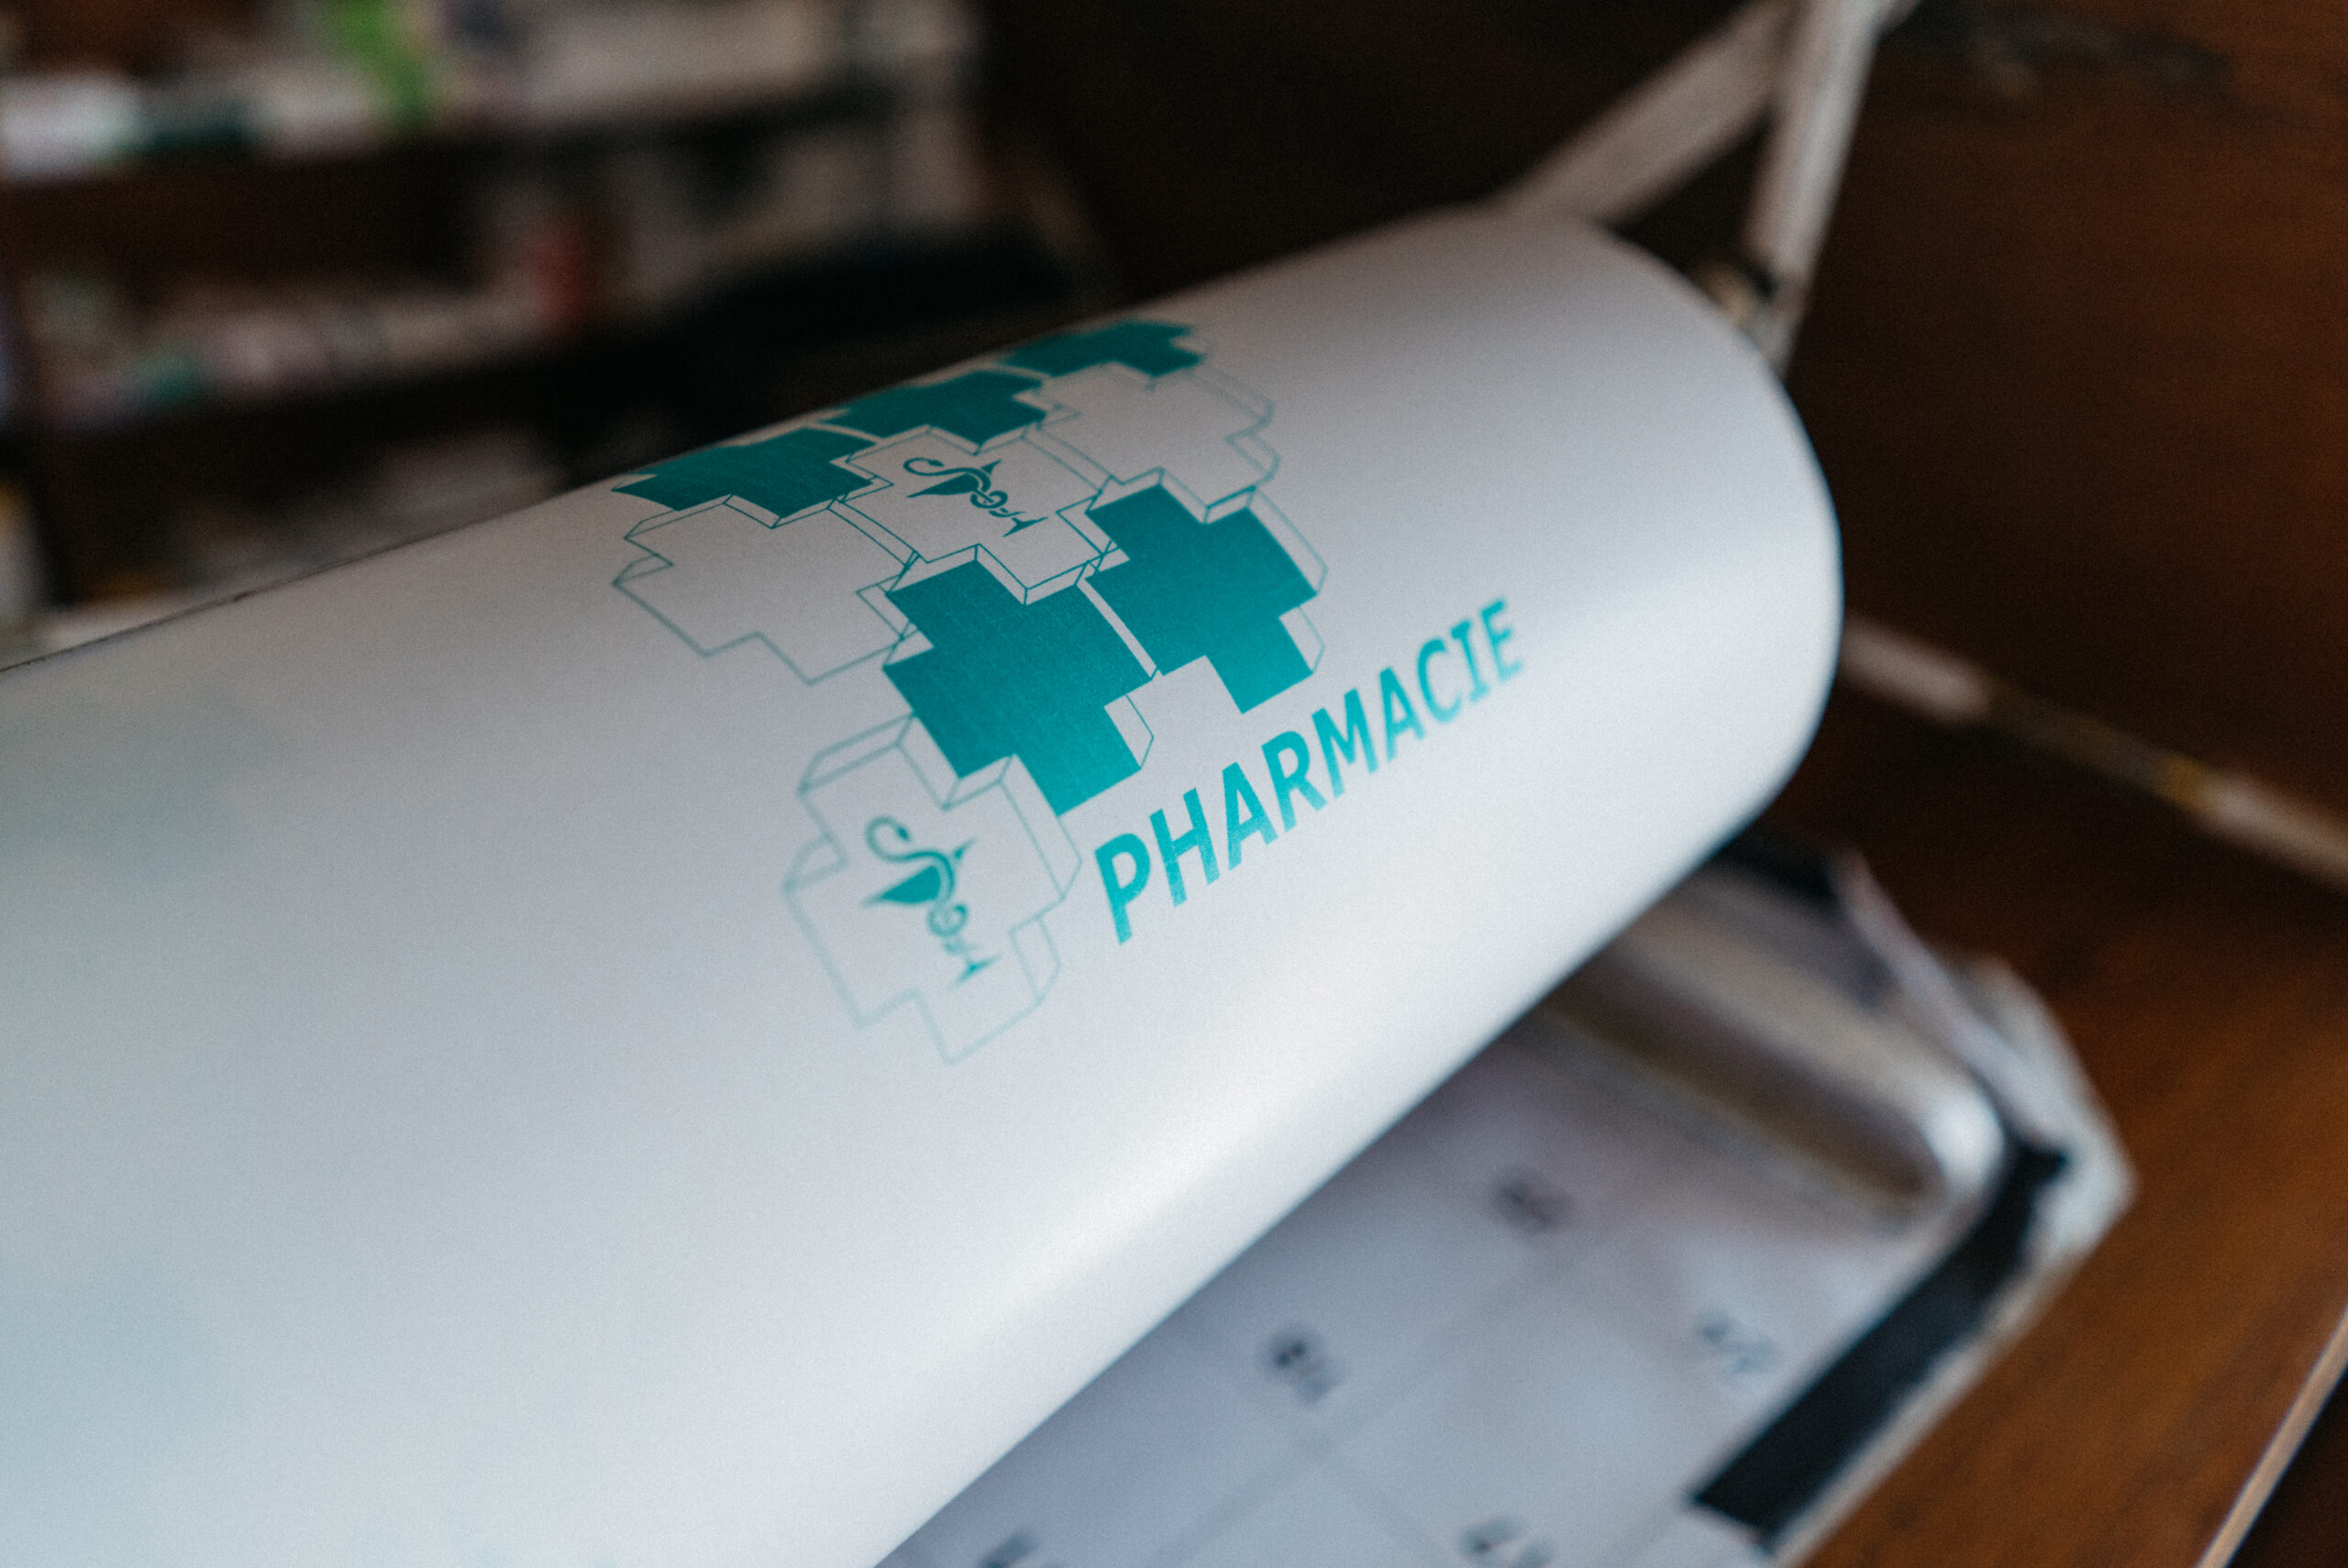 device with pharmacy written on it